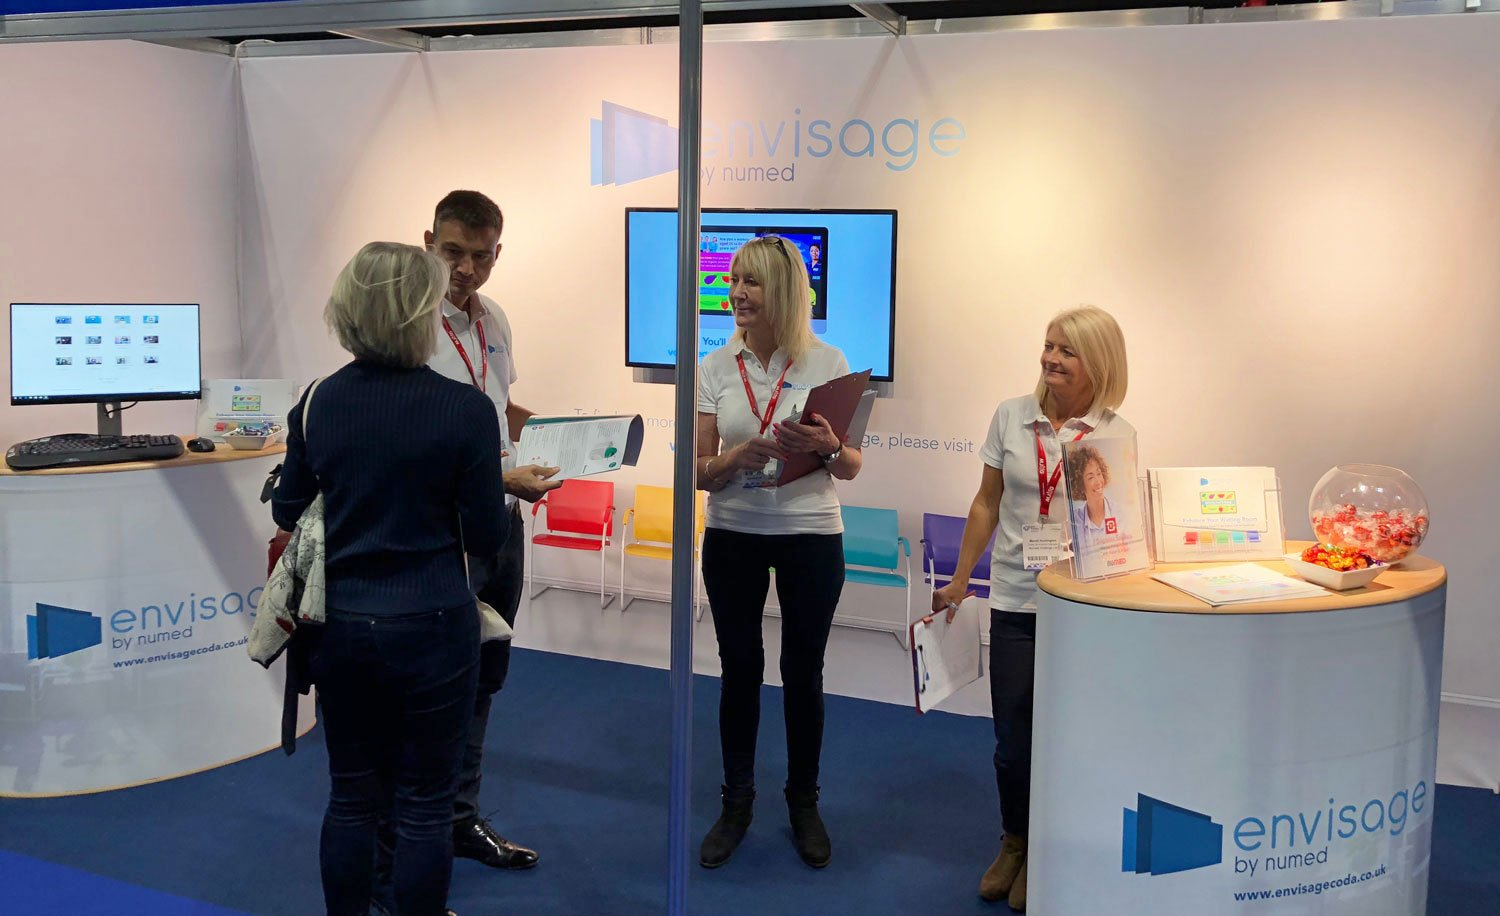 envisage by numed at best practice conference front